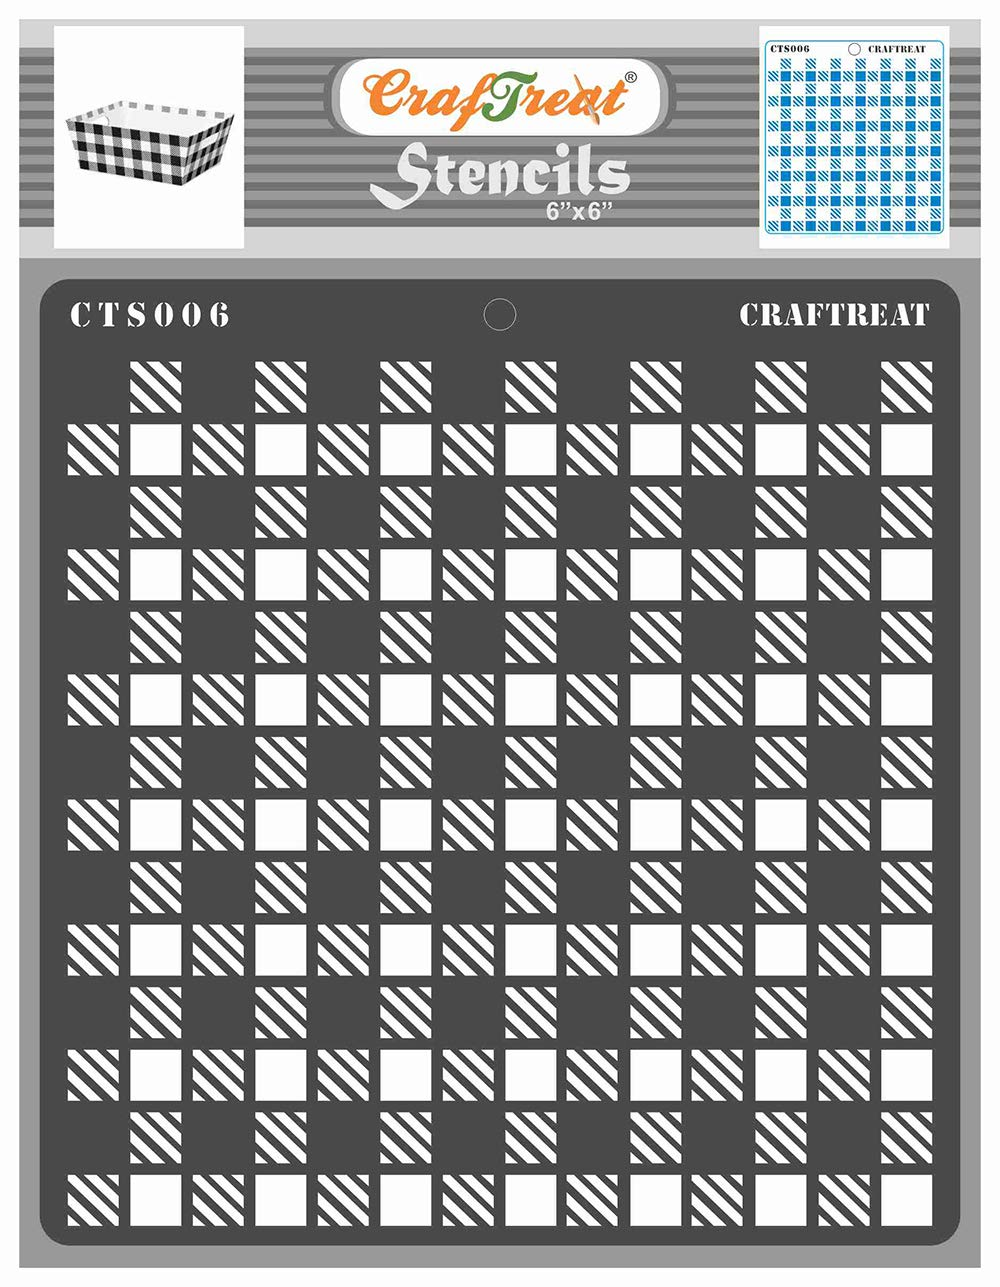 CrafTreat Geometric Stencils for Painting on Wood, Wall, Tile, Canvas, Paper, Fabric and Floor - Shepherds Checkers Stencil - 6x6 Inches - Reusable DIY Art and Craft Stencils